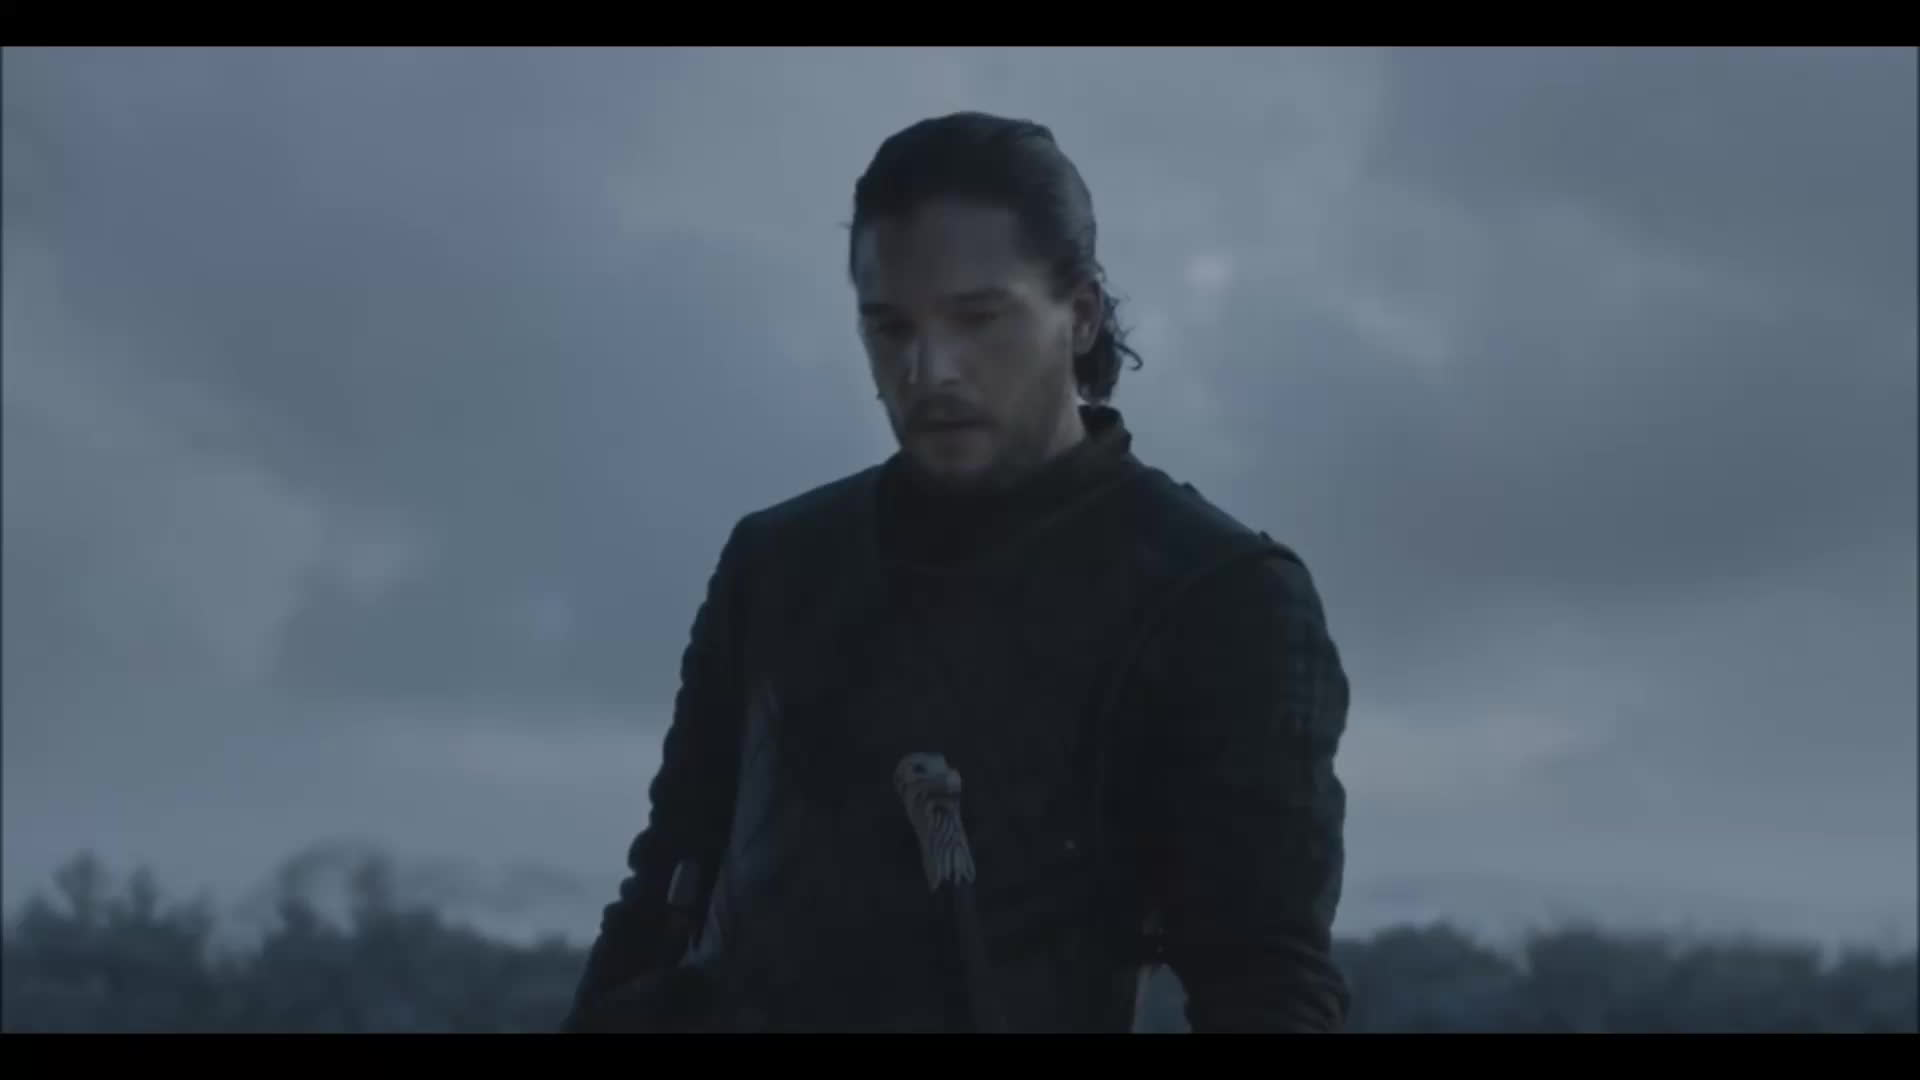 battleofthebastards, jonsnow, yolo, Game of Thrones Battle of the Bastards GIFs